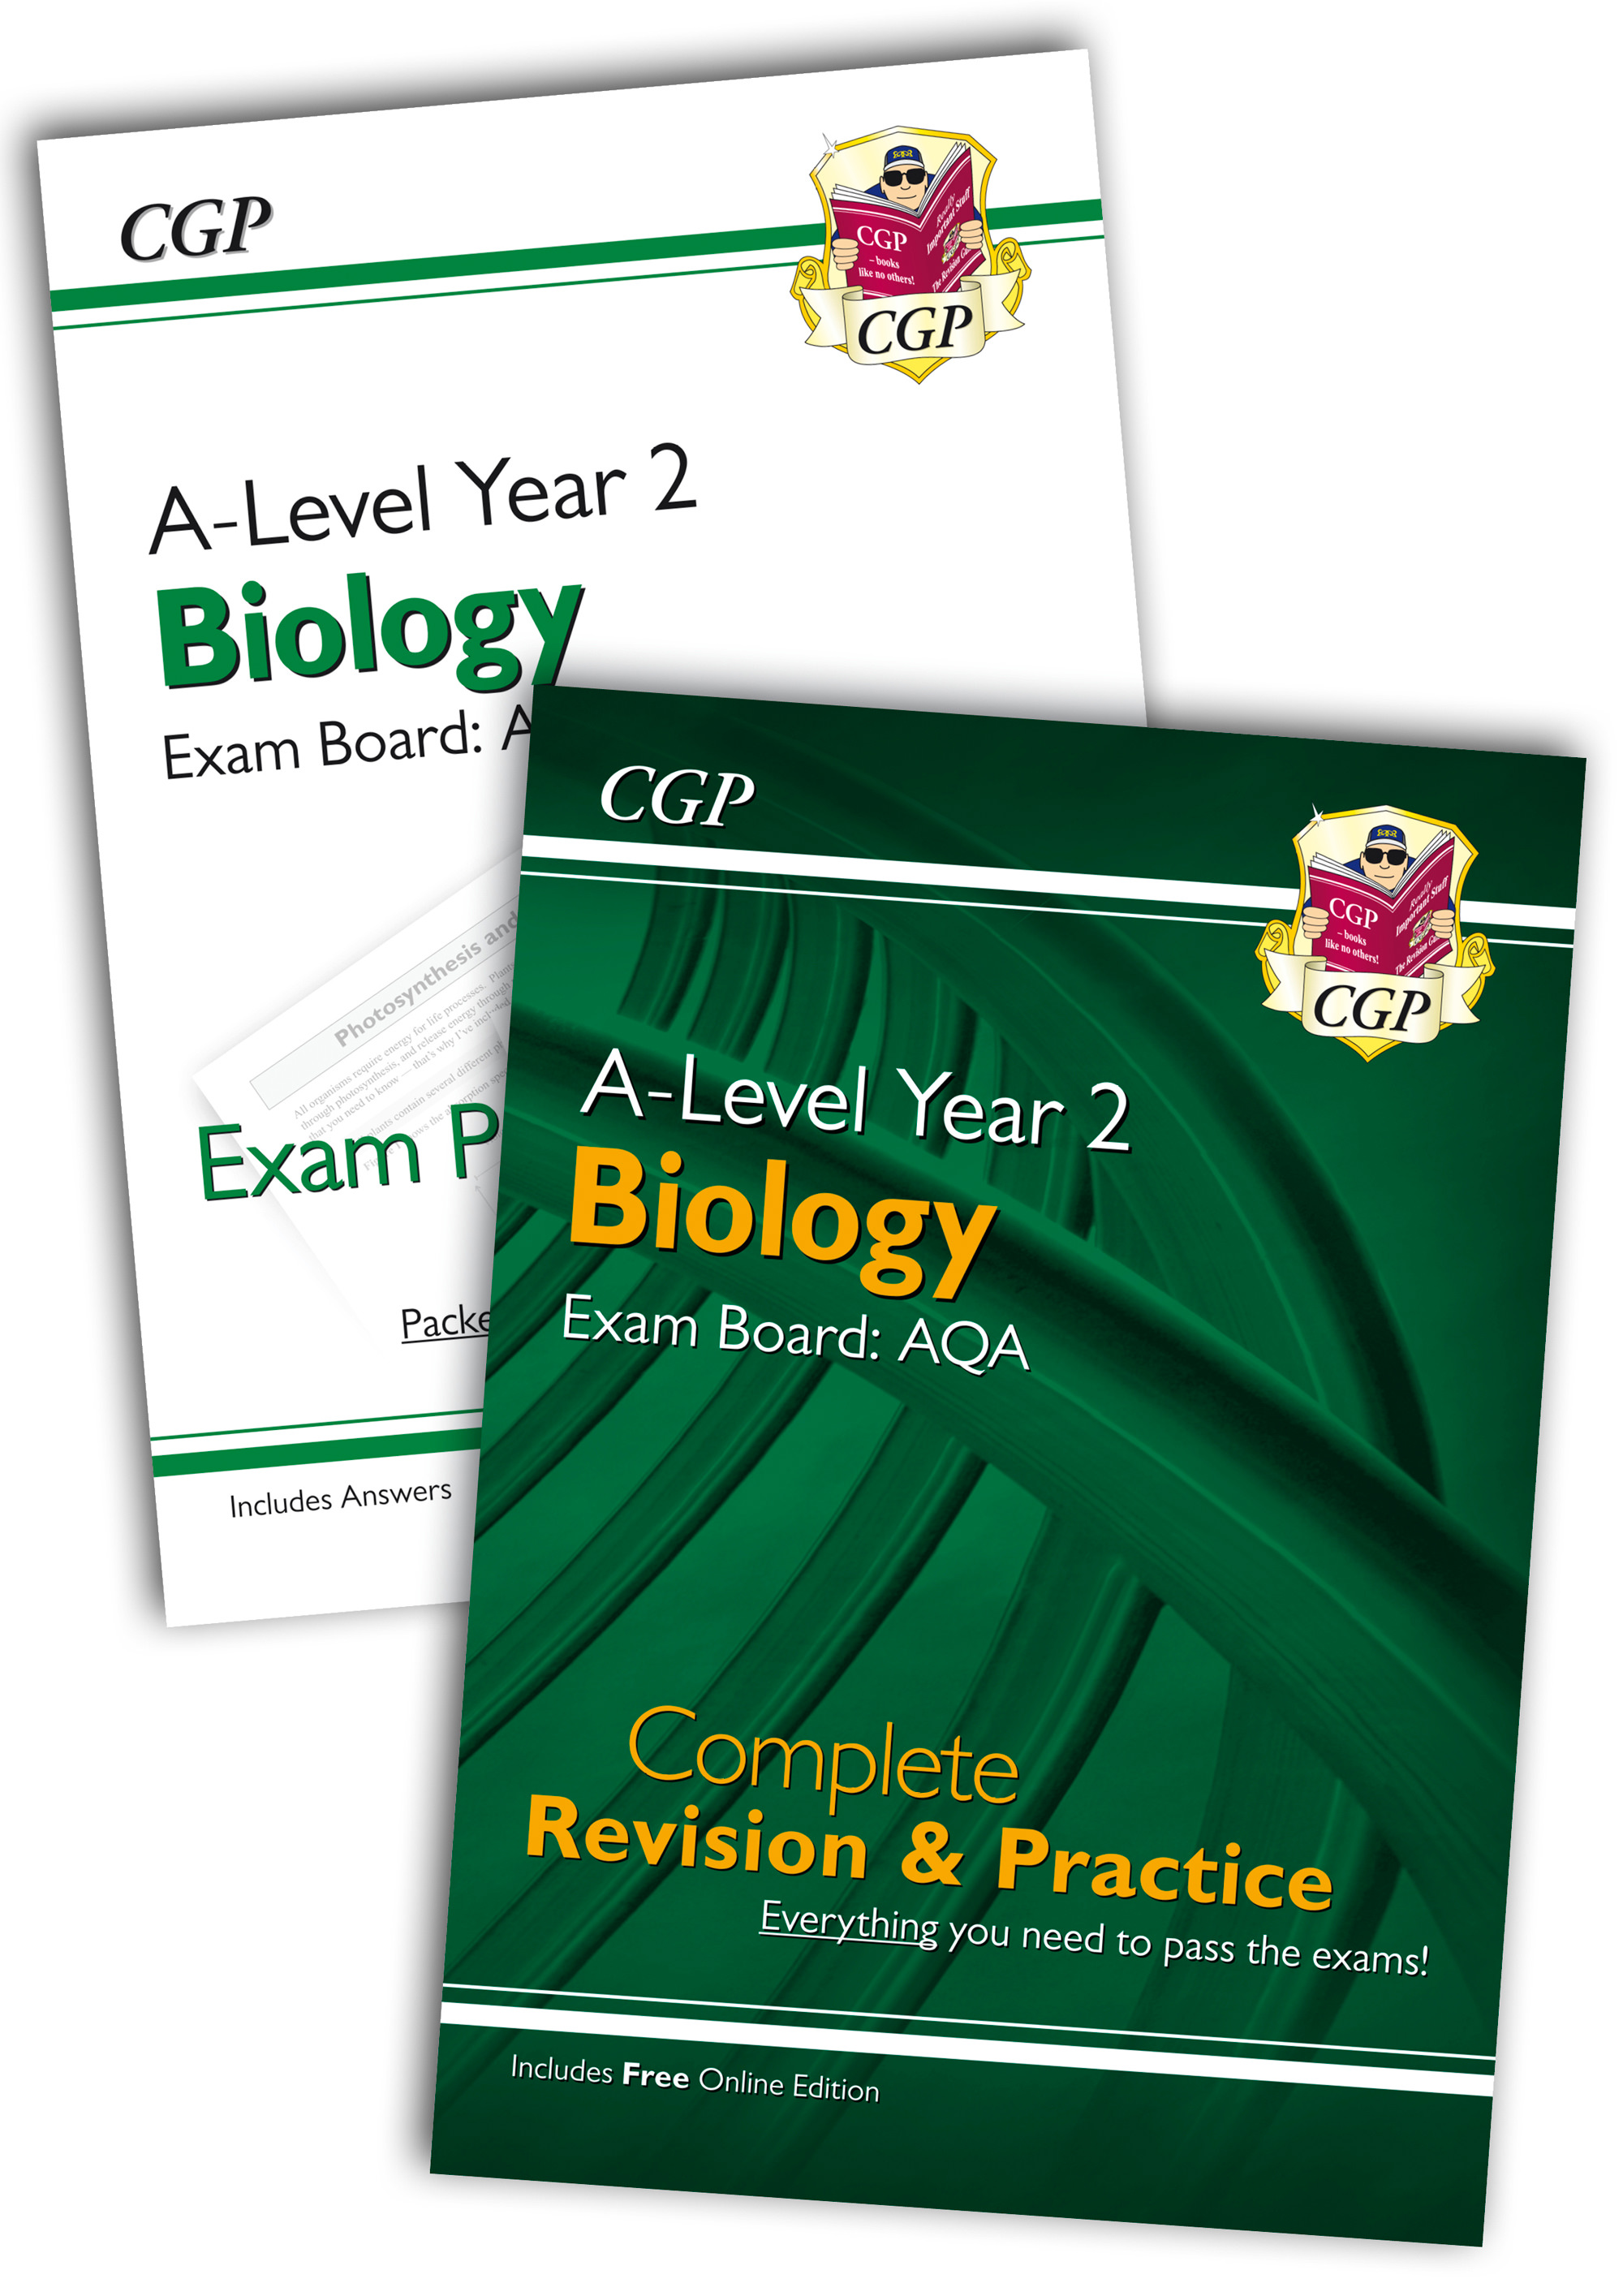 BARQB61 - New 2018 Complete Revision and Exam Practice A-Level Biology Bundle: AQA Year 2